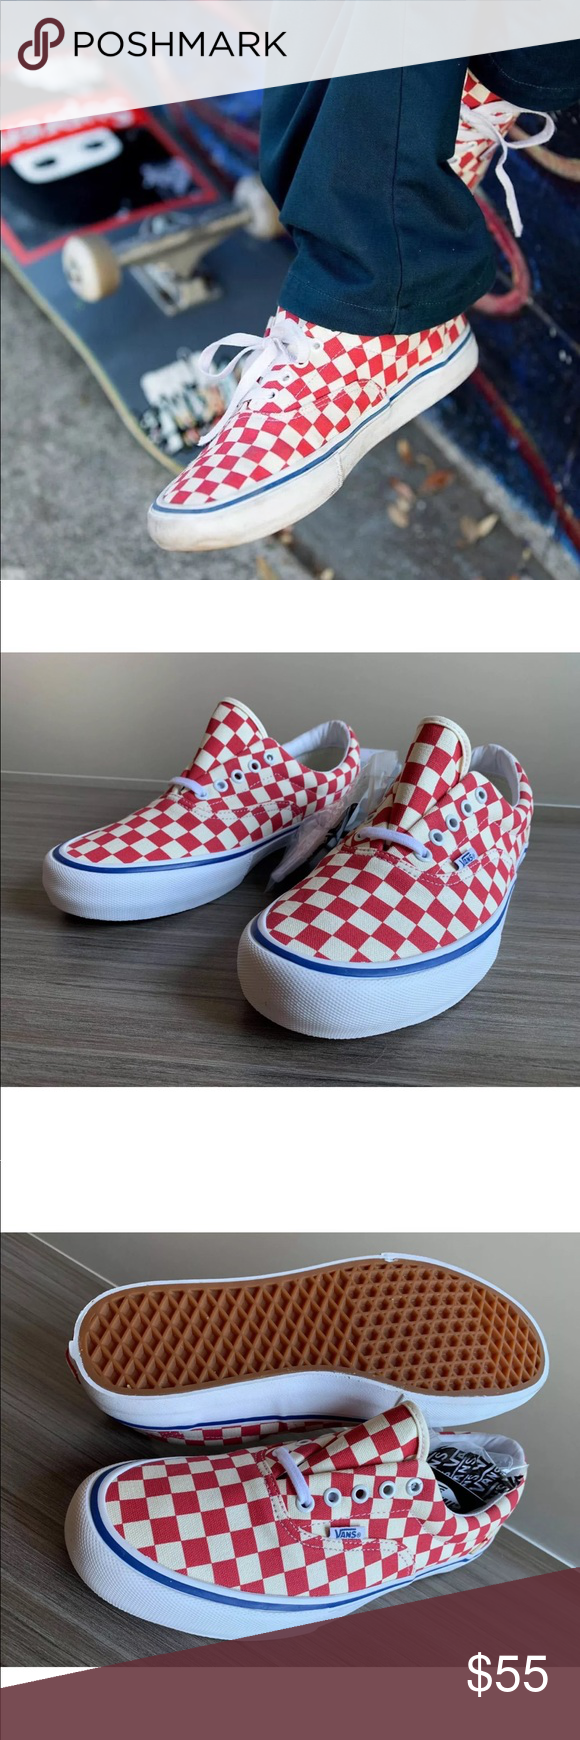 cc123cb27a3 Vans Men s Era Pro Checkerboard Rococo Red NEW AUTHENTIC VANS ERA PRO  CHECKERBOARD SKATE SHOES COLOR  Rococo Red   Off-White RETAIL   60+TAX It  doesn t get ...